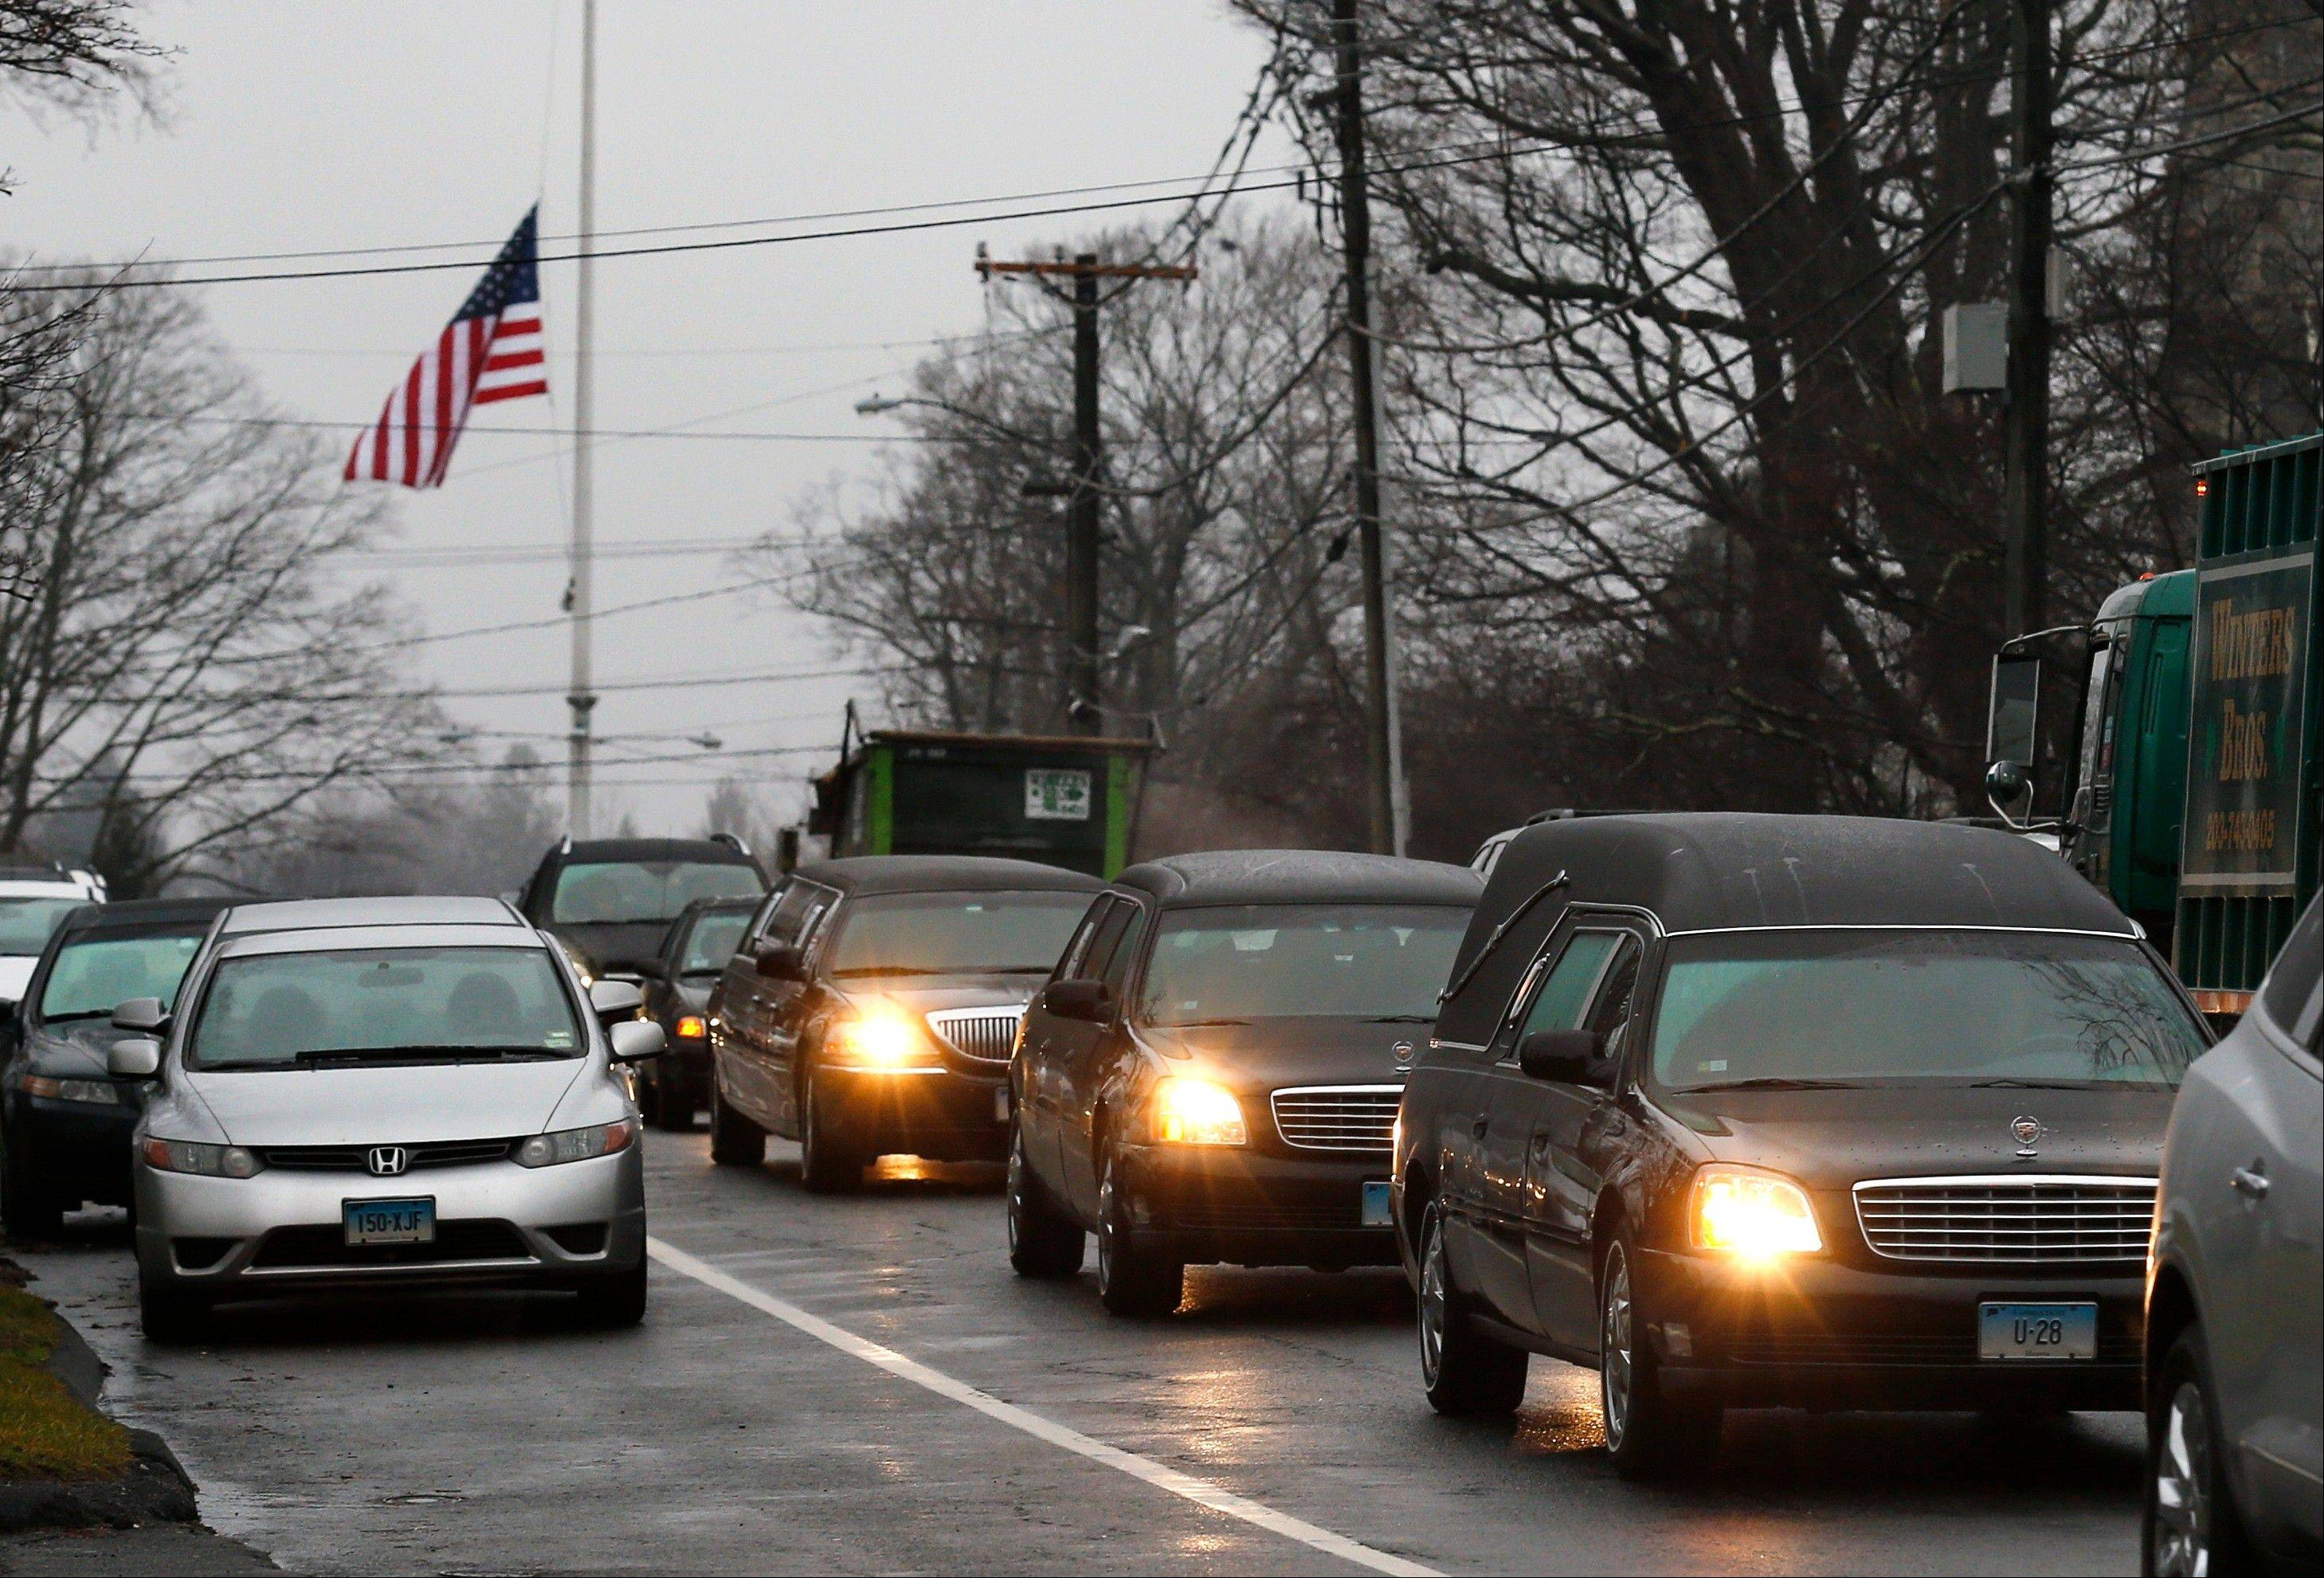 A hearse and family limousines for 6-year-old shooting victim Jack Pinto rolls past a flag at half-staff Monday as the funeral procession heads through the historic district in Newtown, Conn. A gunman opened fire on Friday at Sandy Hook Elementary School in the town, killing 26 people, including 20 children before killing himself.